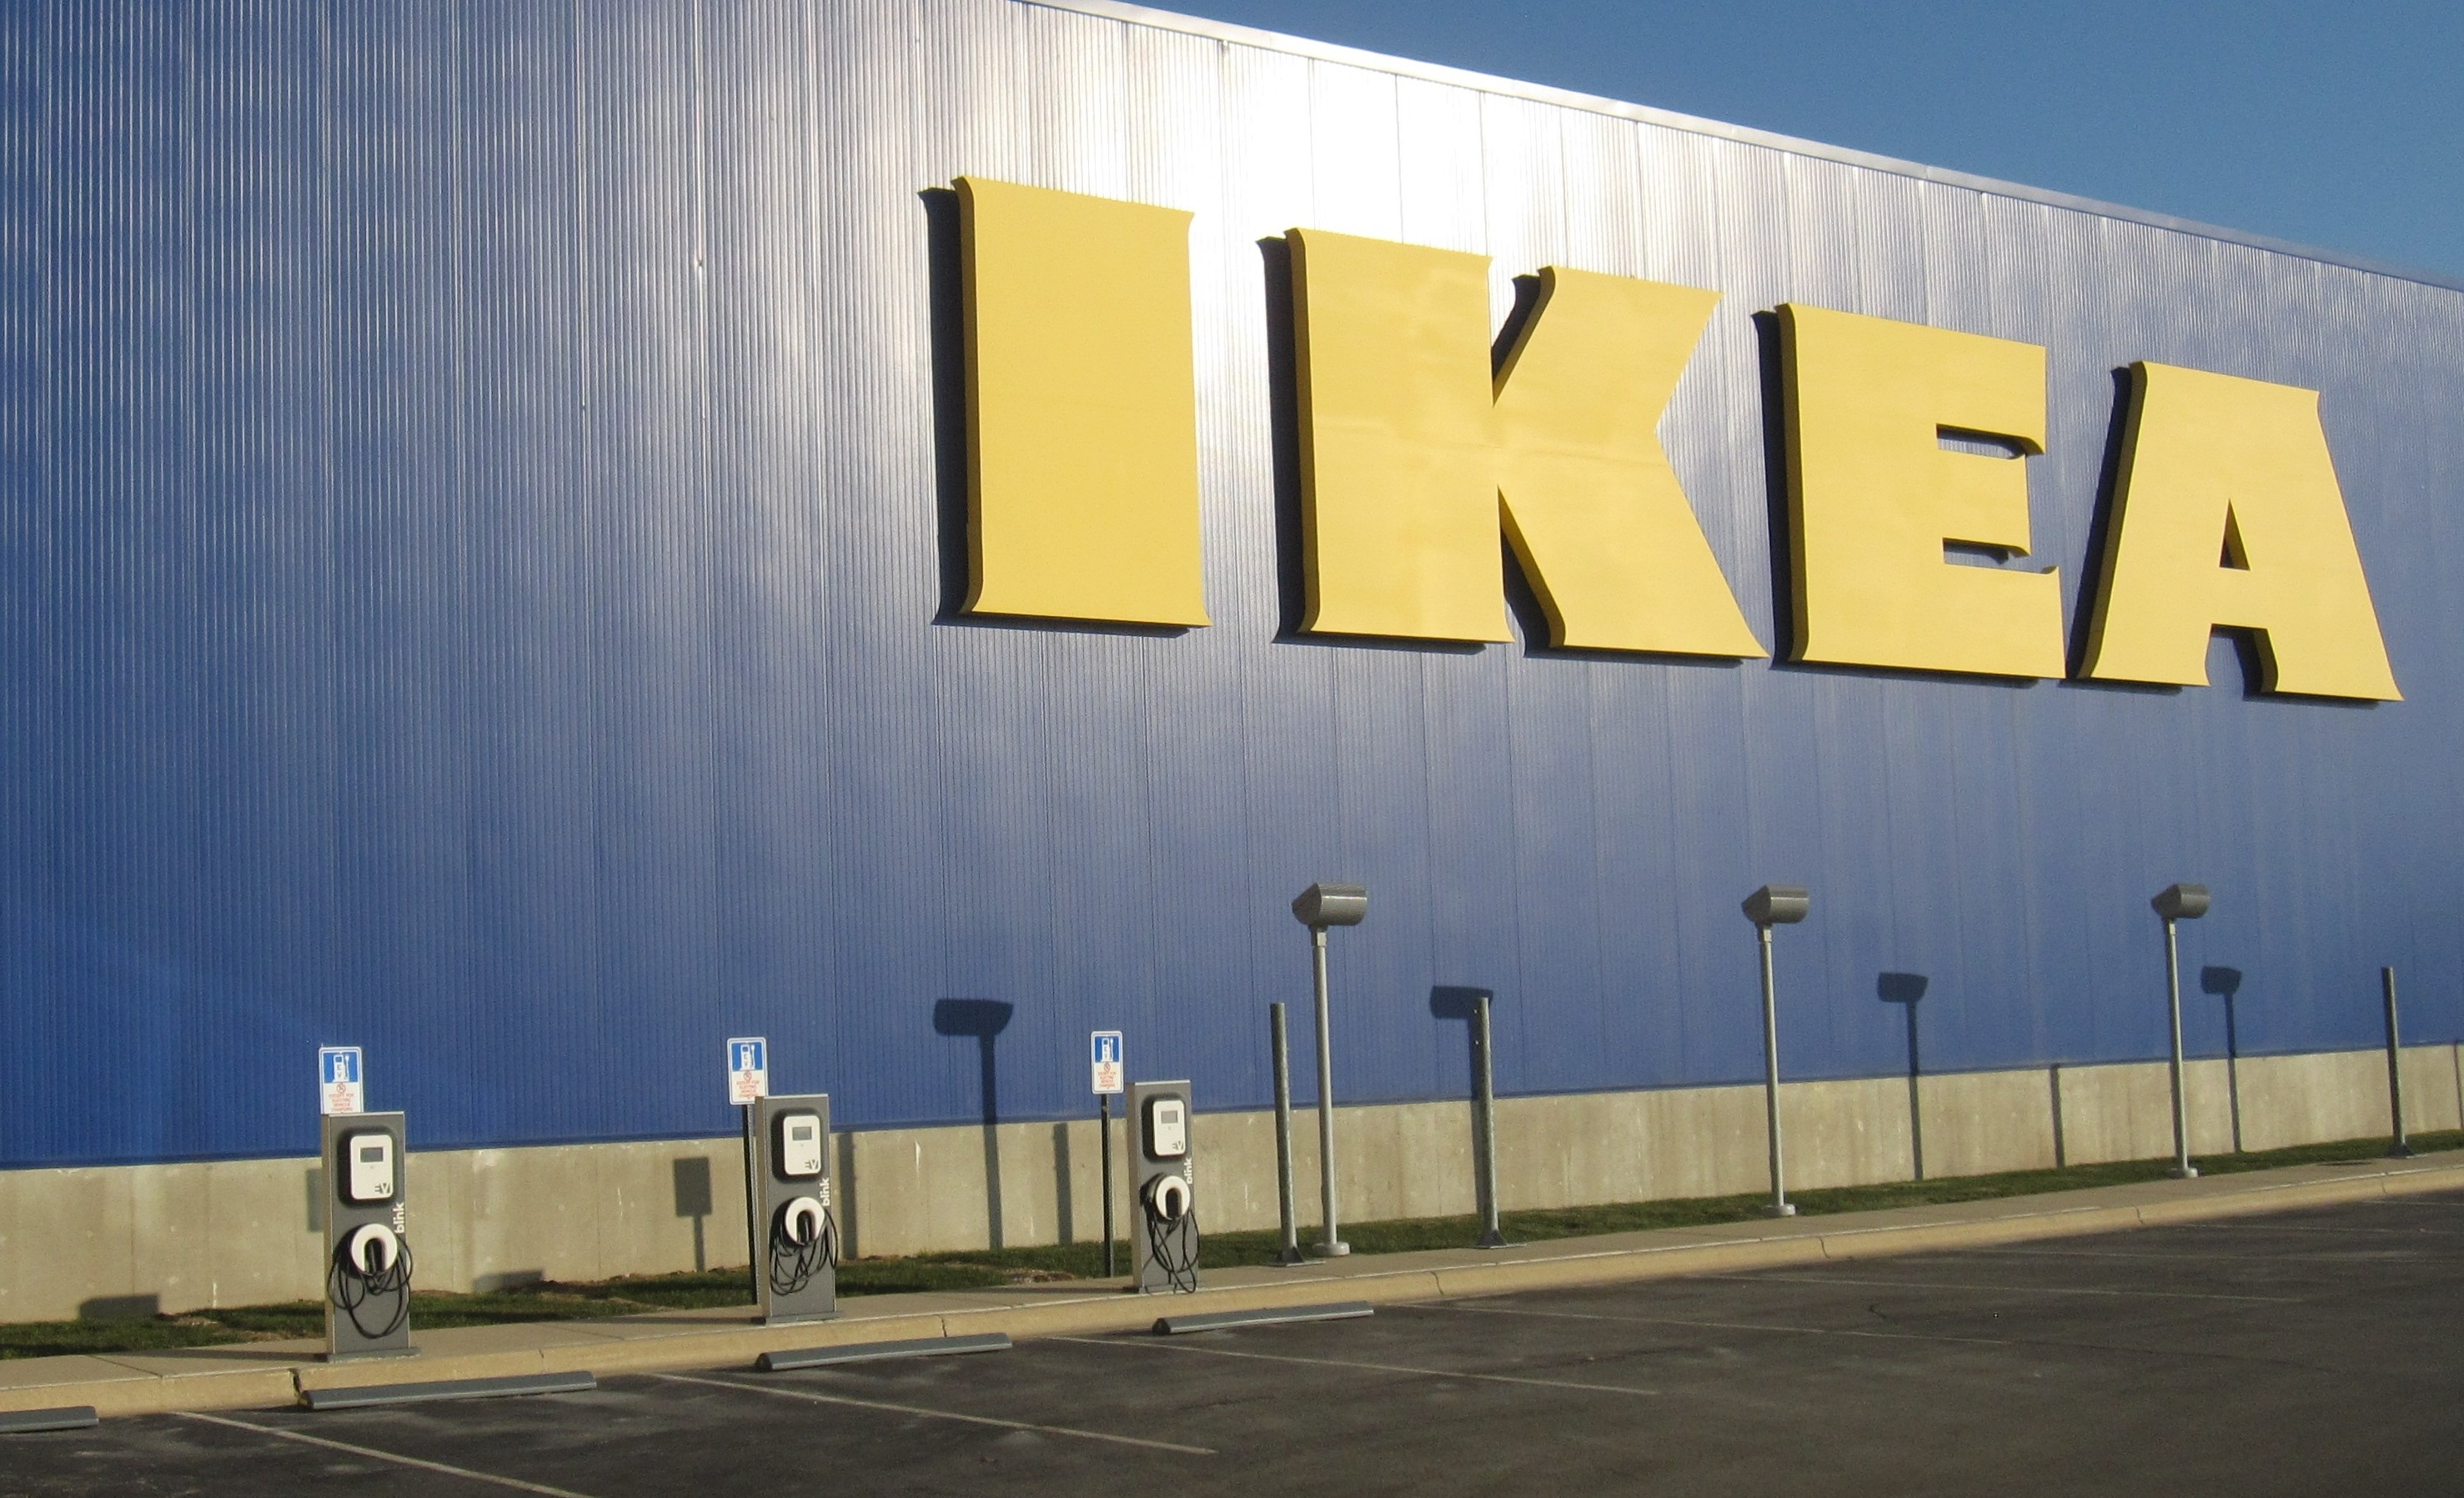 ikea to install 3 electric vehicle charging stations at future grand prairie tx store opening. Black Bedroom Furniture Sets. Home Design Ideas